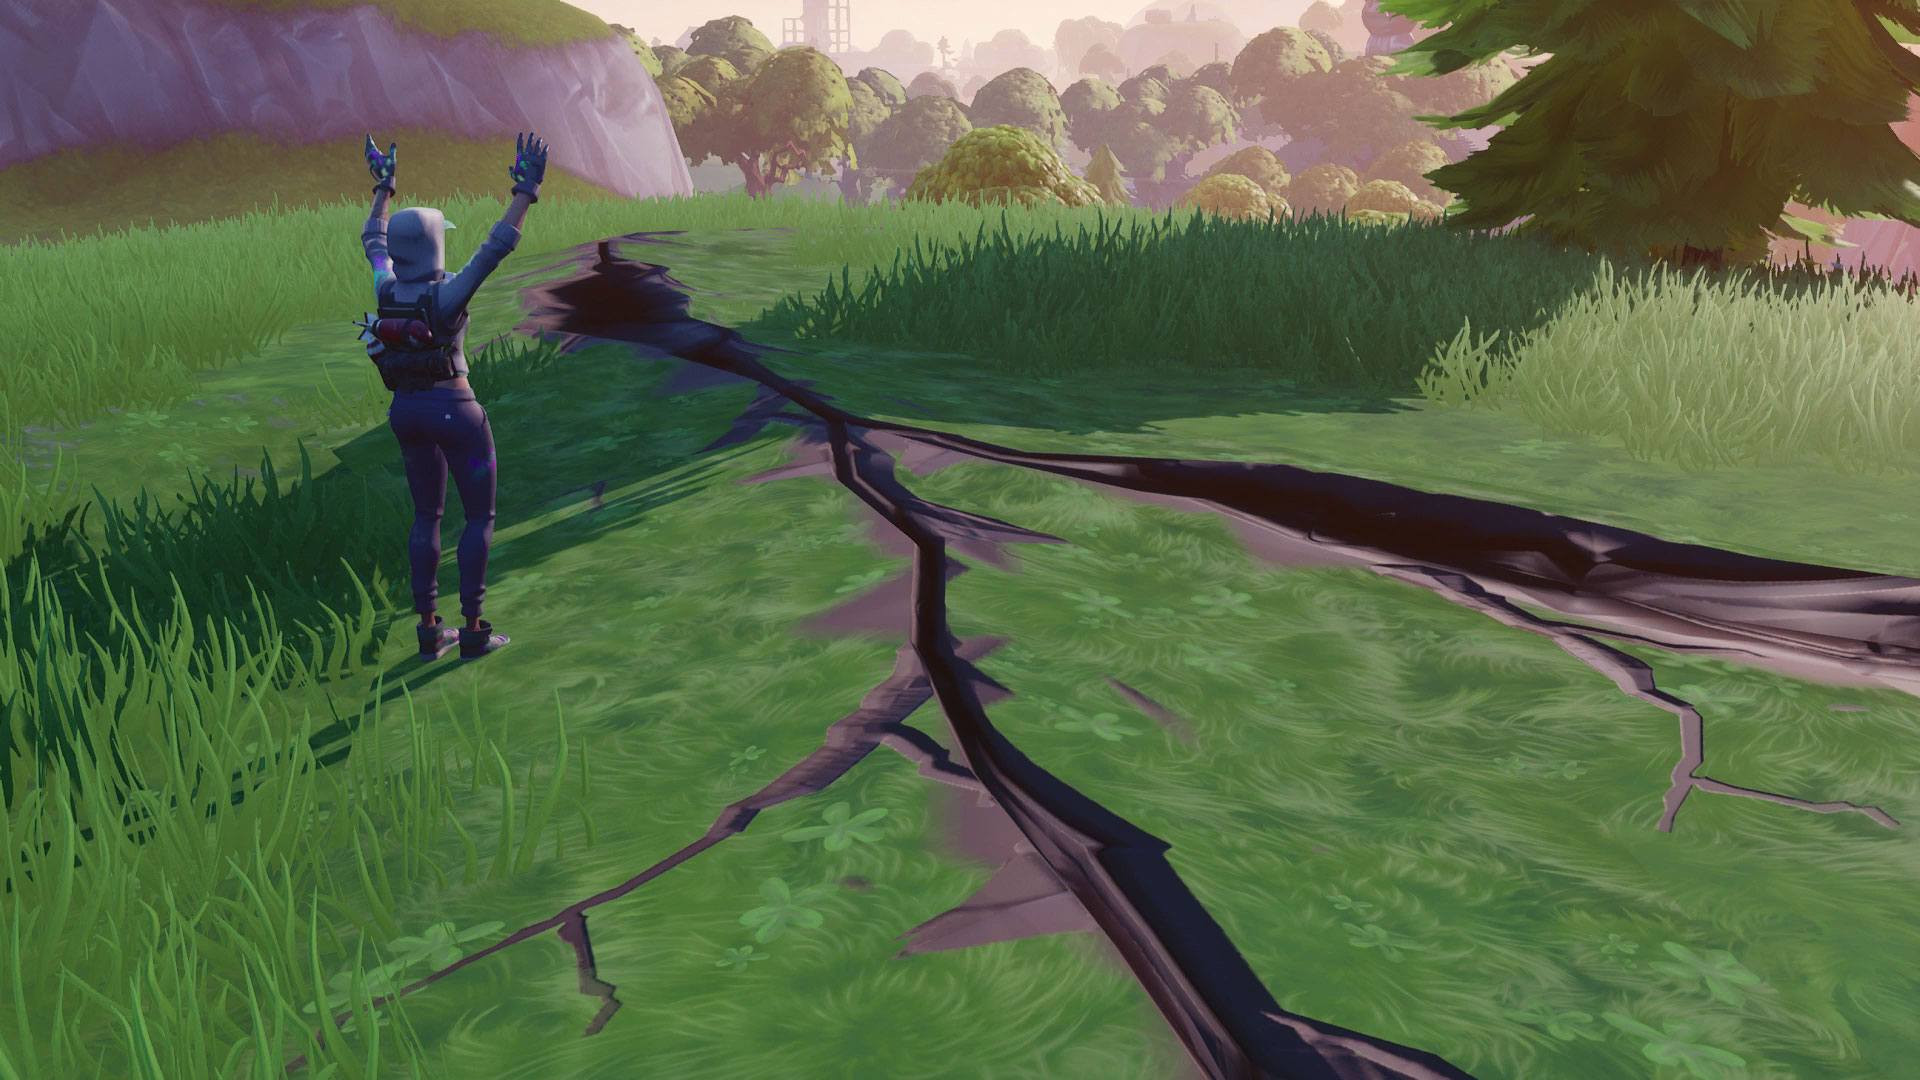 Earthquake Time In Fortnite The Fortnite Earthquake Event Has Already Started As Cracks Begin To Appear Across The Battle Royale Map Gamesradar